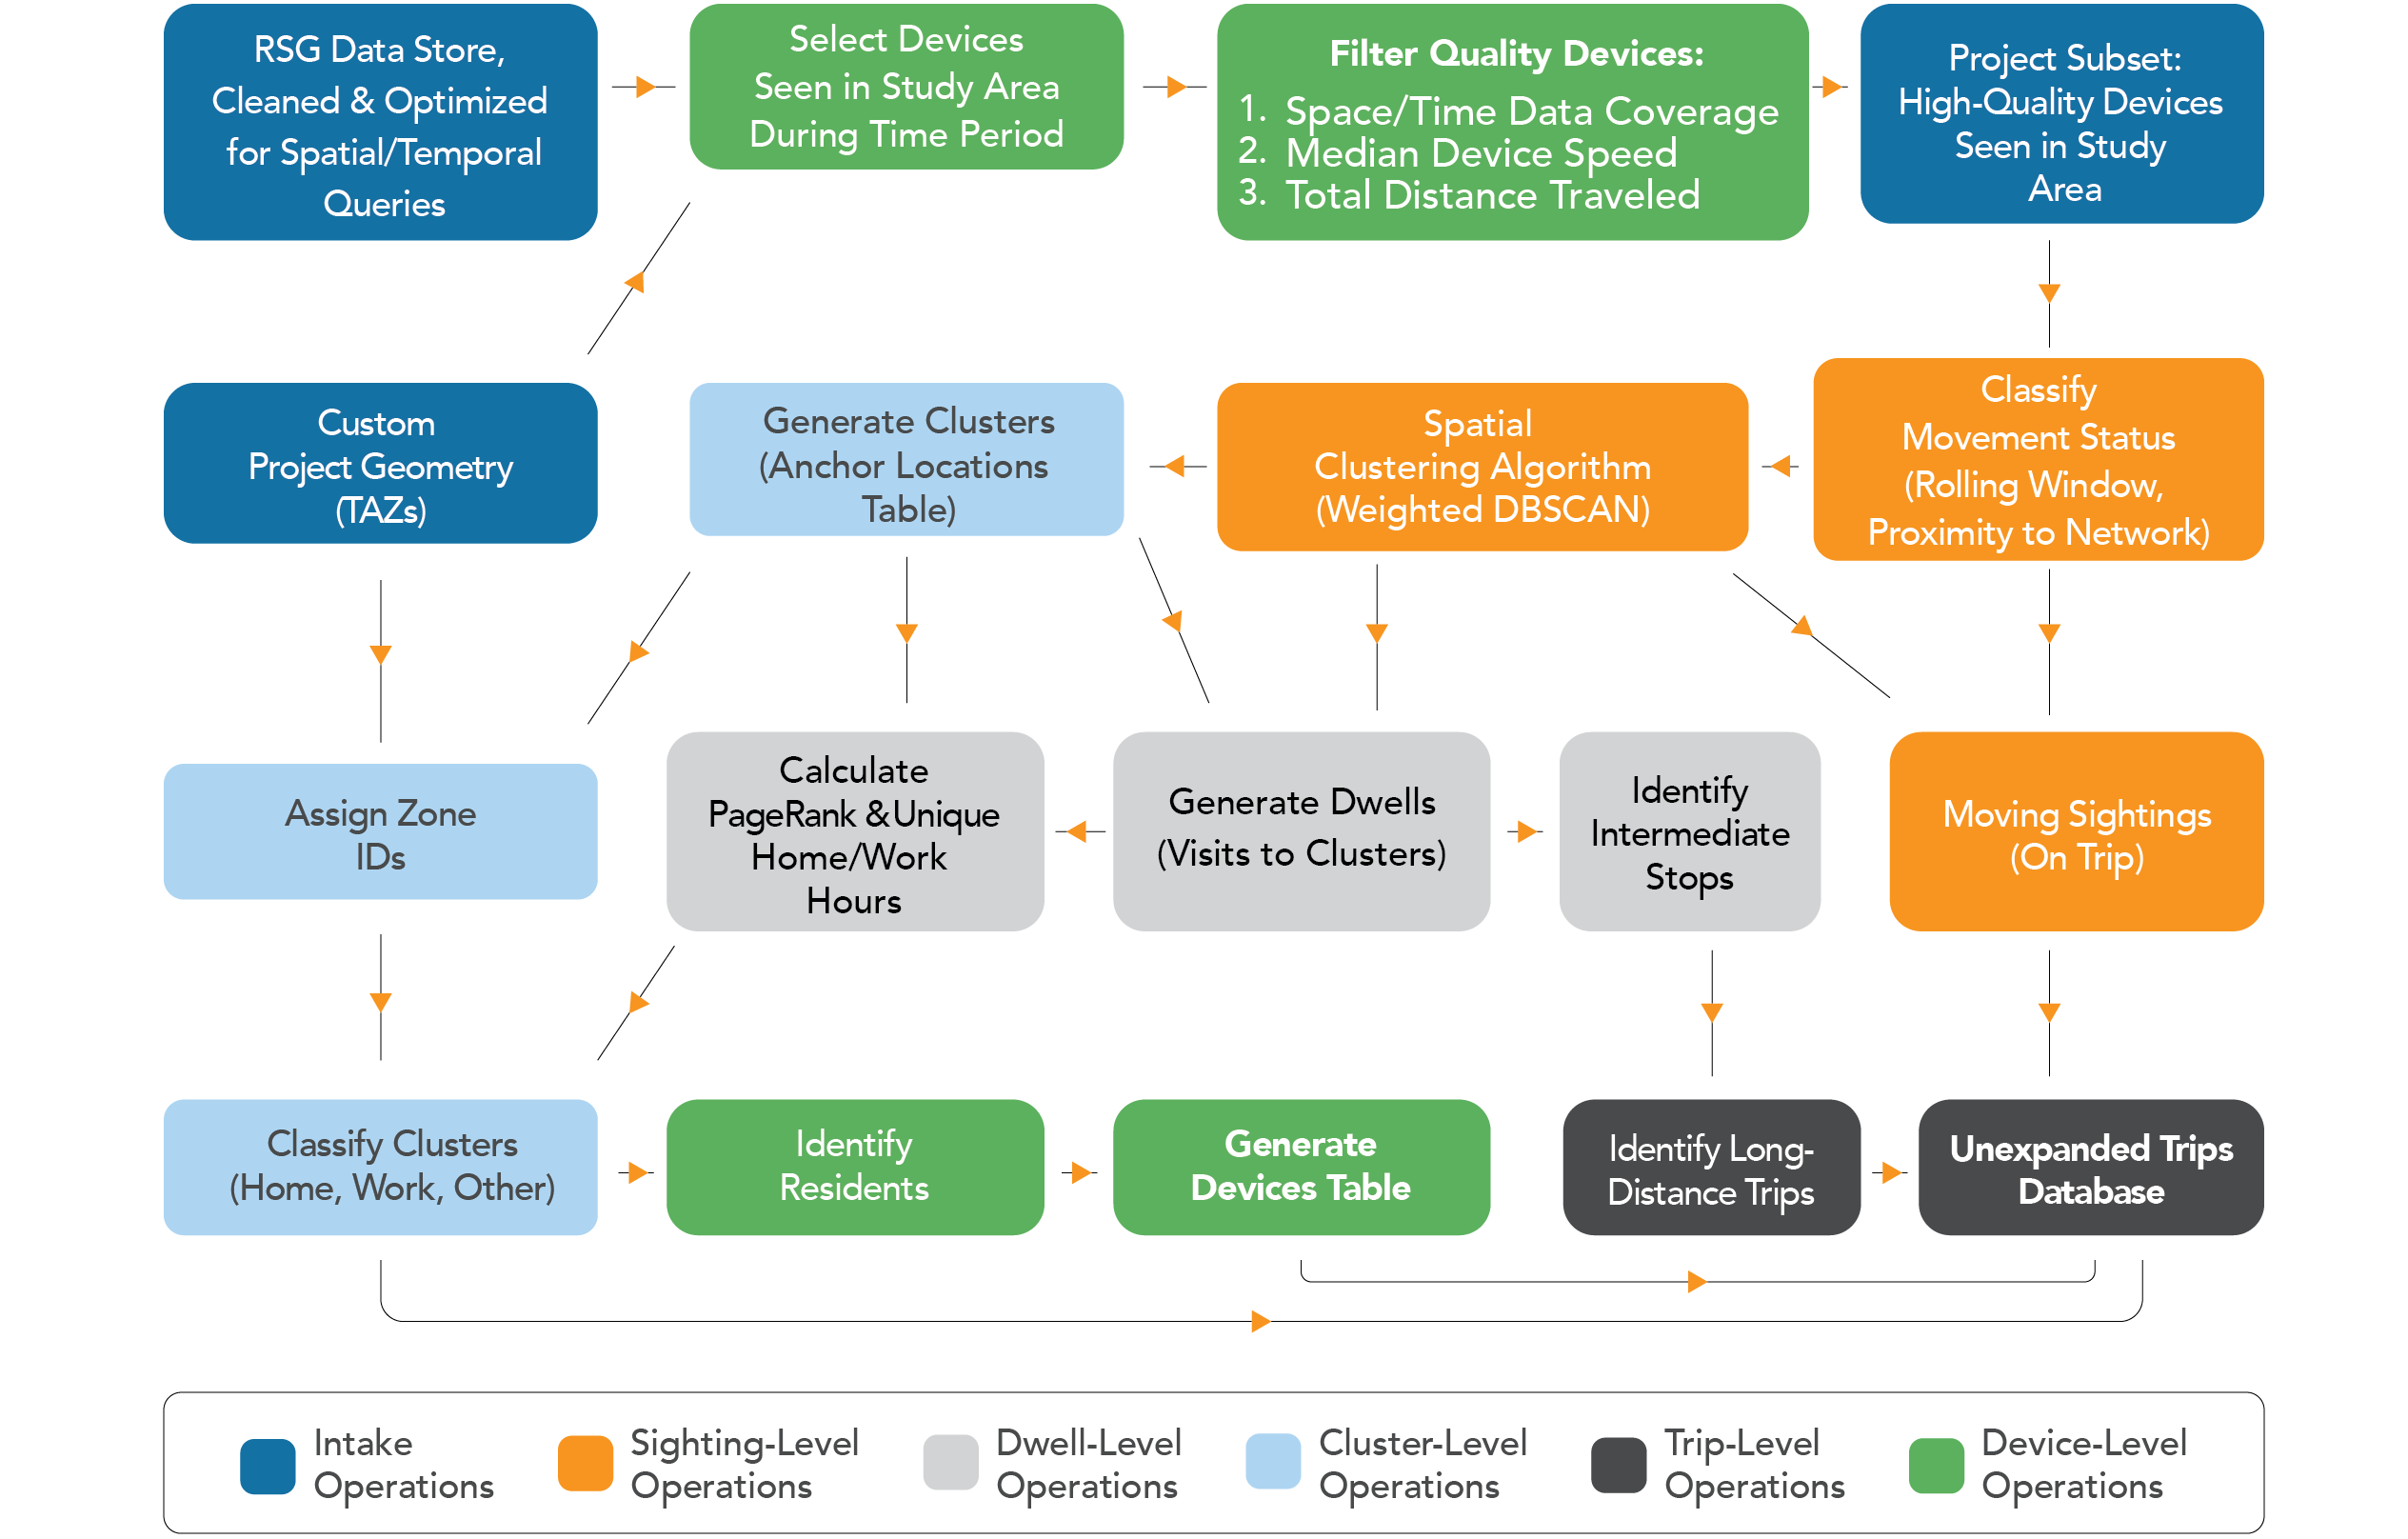 This graphic depicts the LBS data processing procedure.